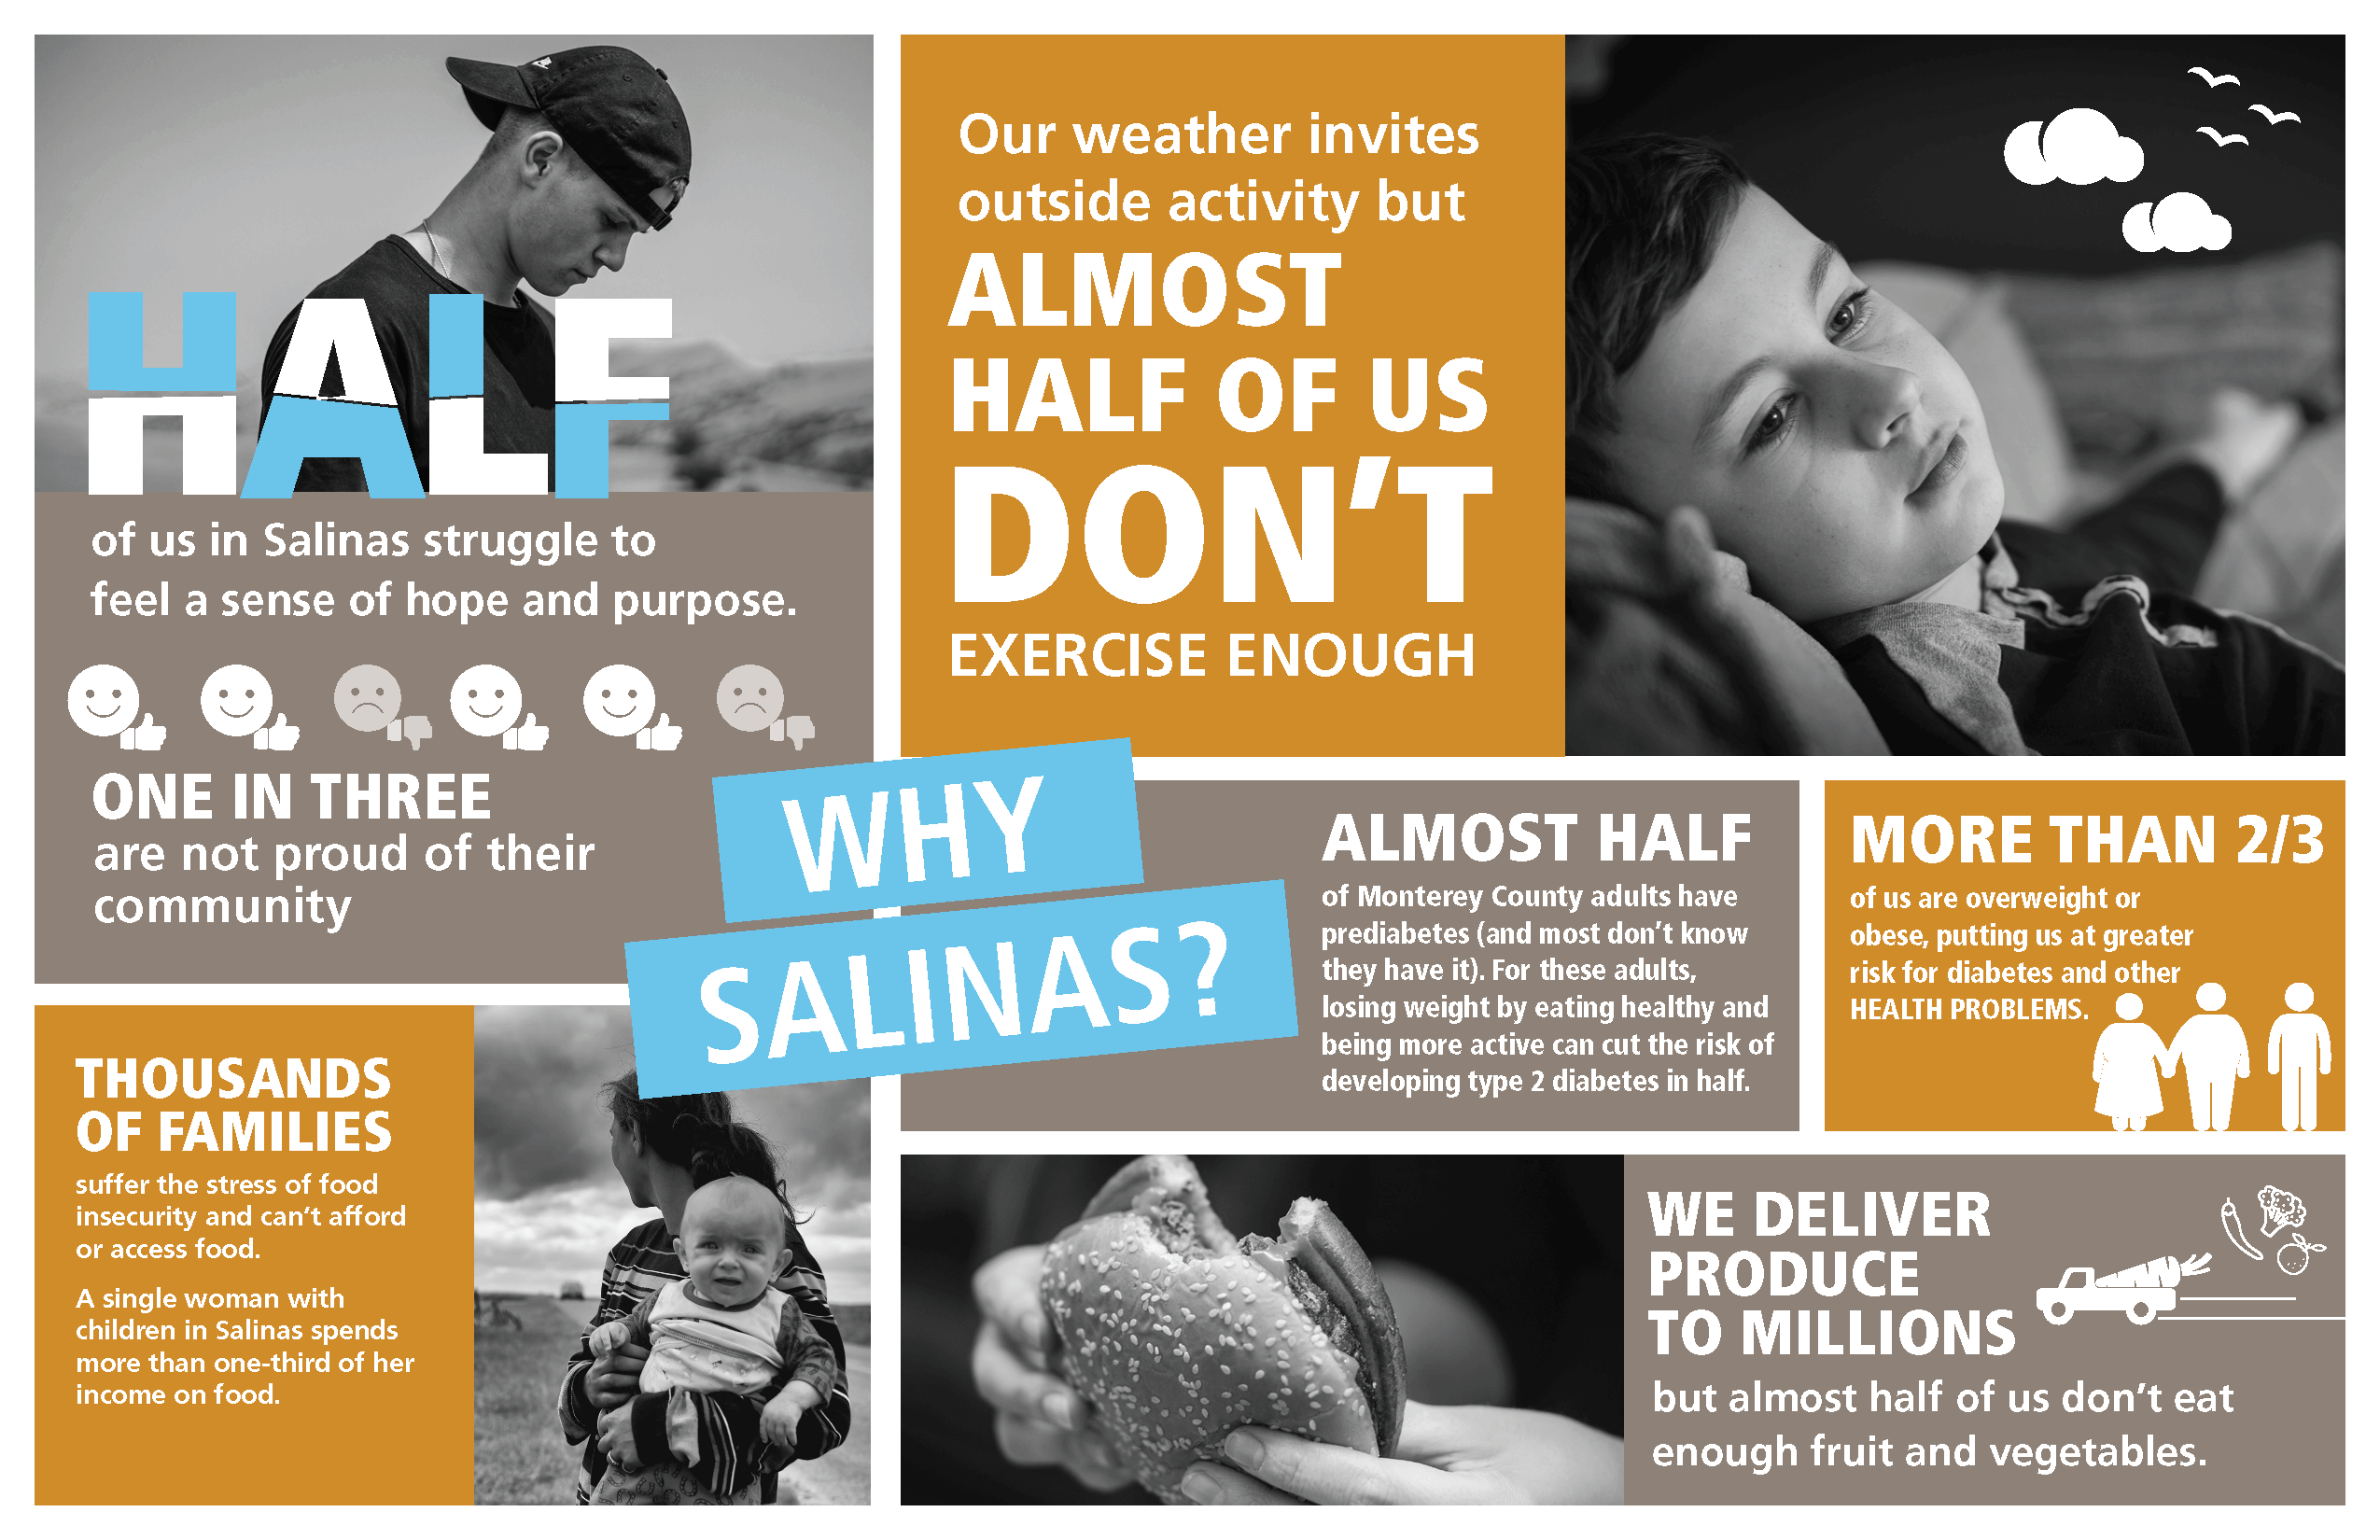 Why Salinas? Half of us in Salinas struggle to feel a sense of purpose. Almost half of us don't exercise enough.